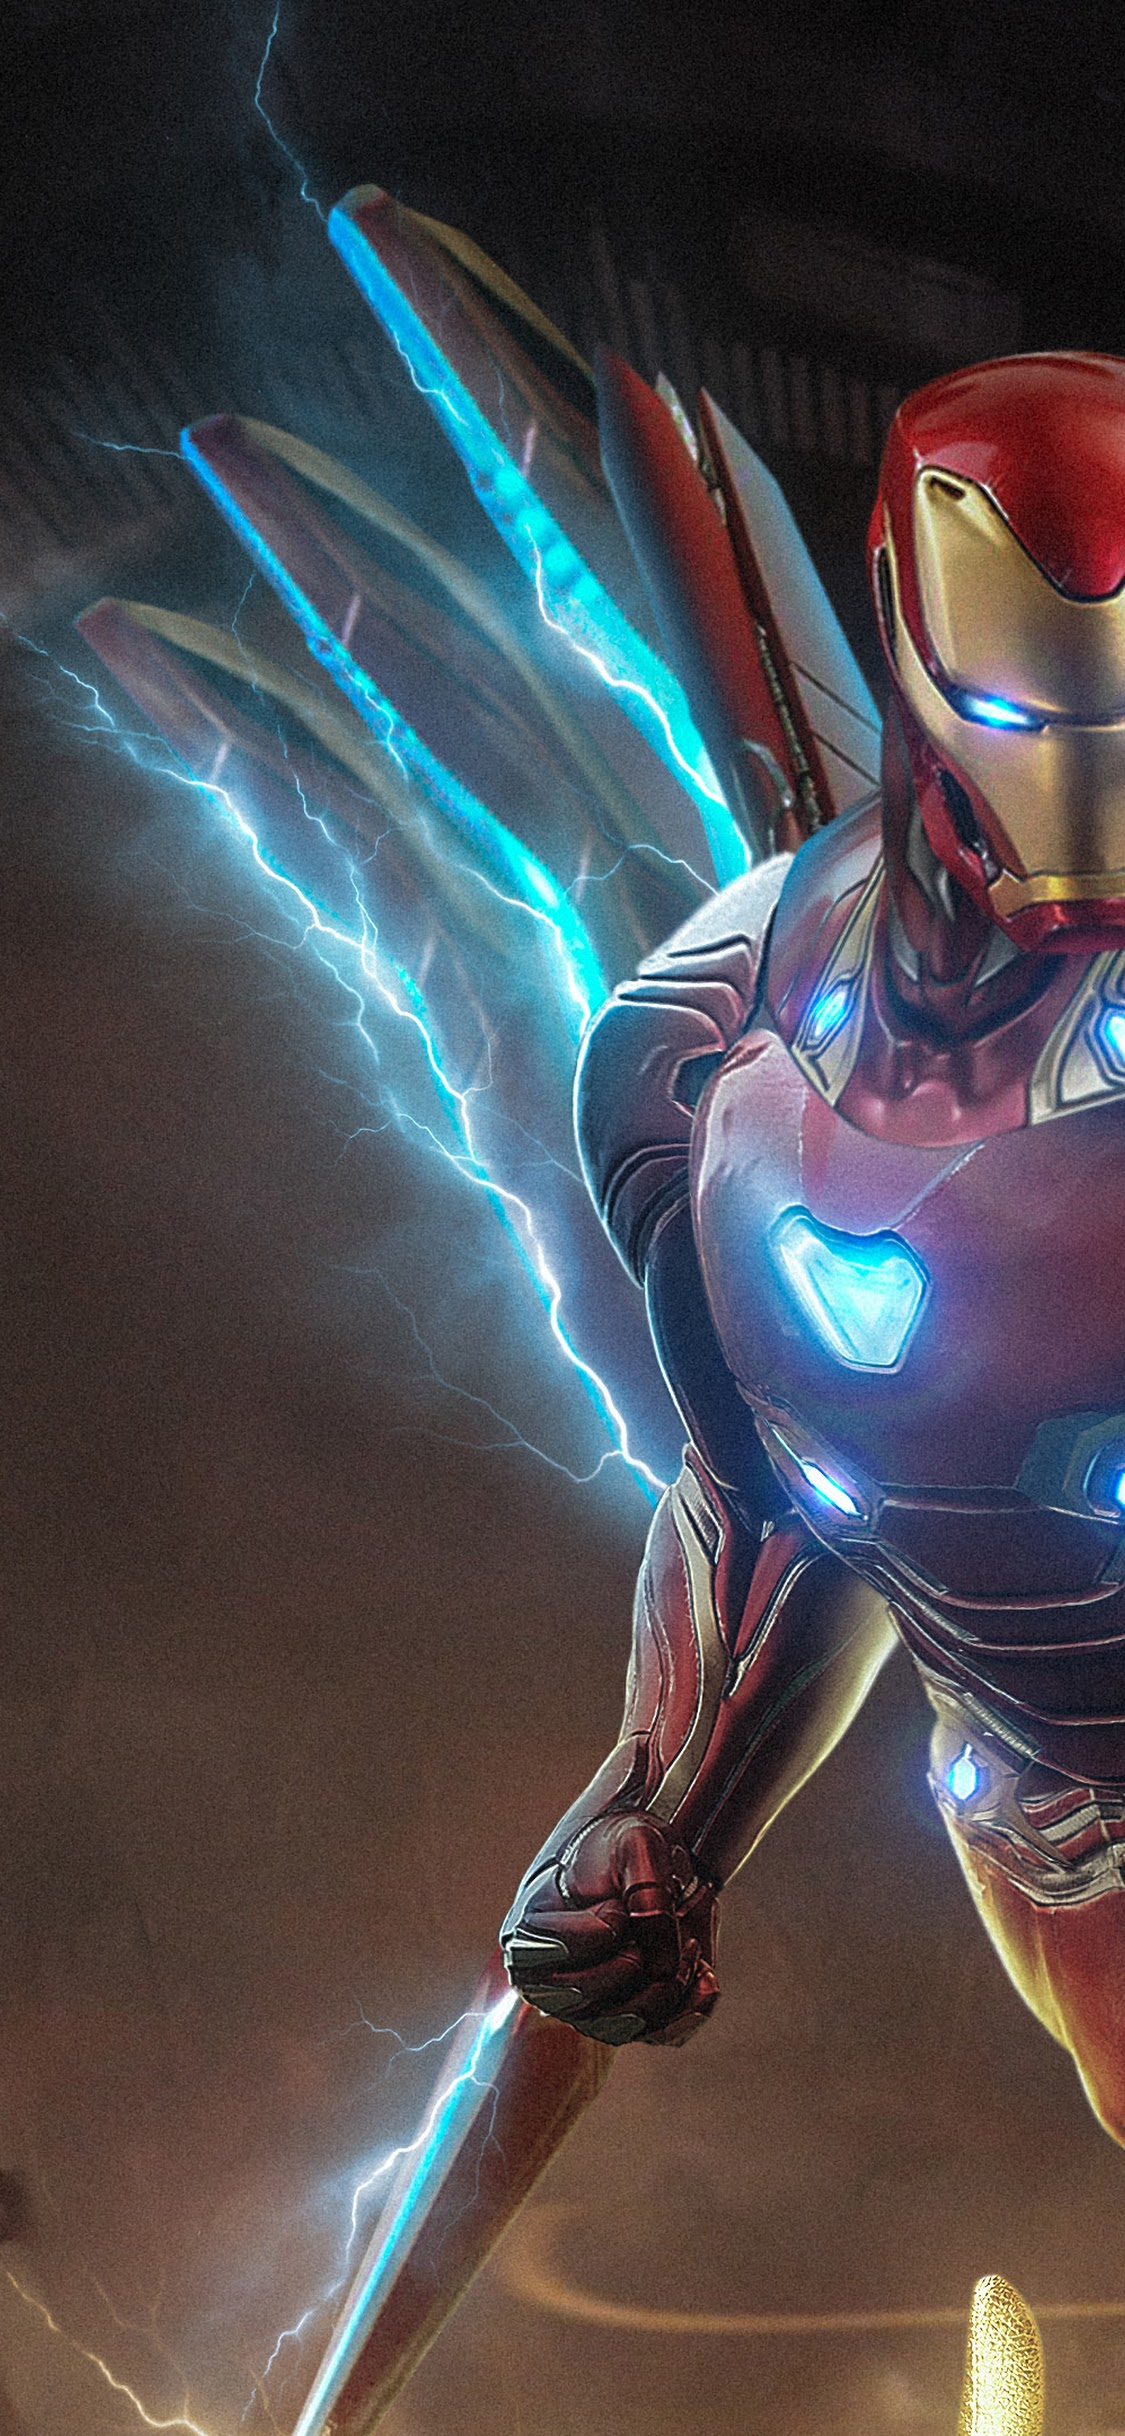 Avengers Endgame Iron Man 4k Wallpaper 74